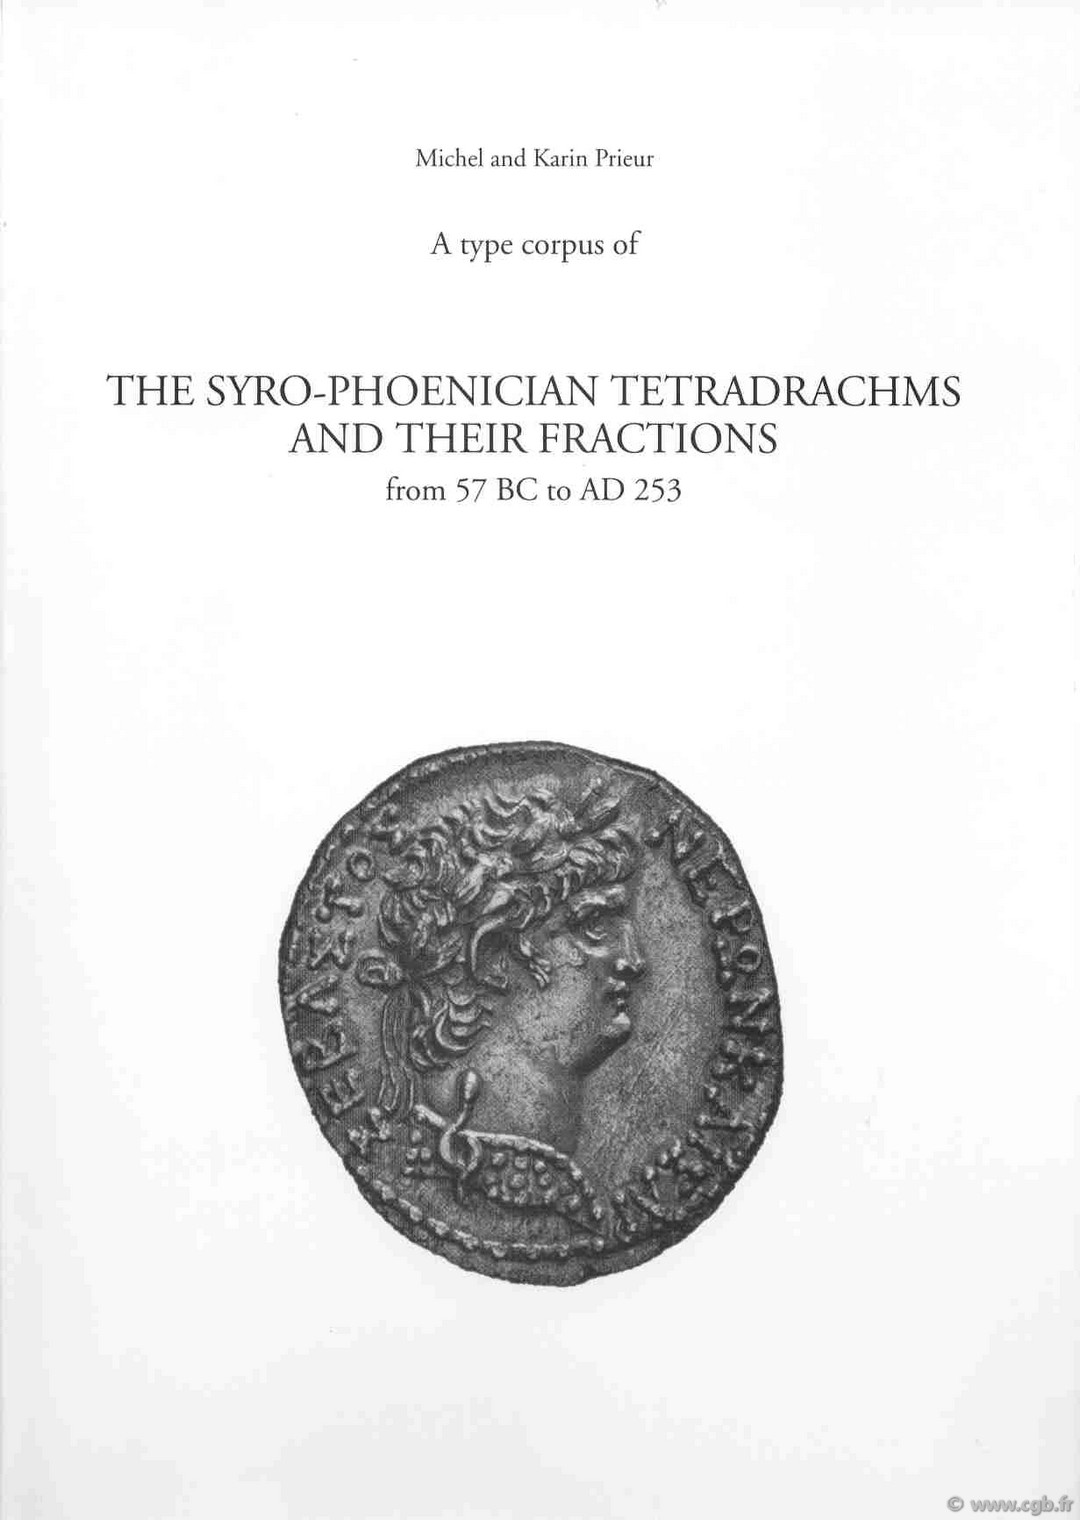 A type corpus of the syro-phoenician tetradrachms and their fractions from 57 BC to AD 253 PRIEUR Karin, PRIEUR Michel